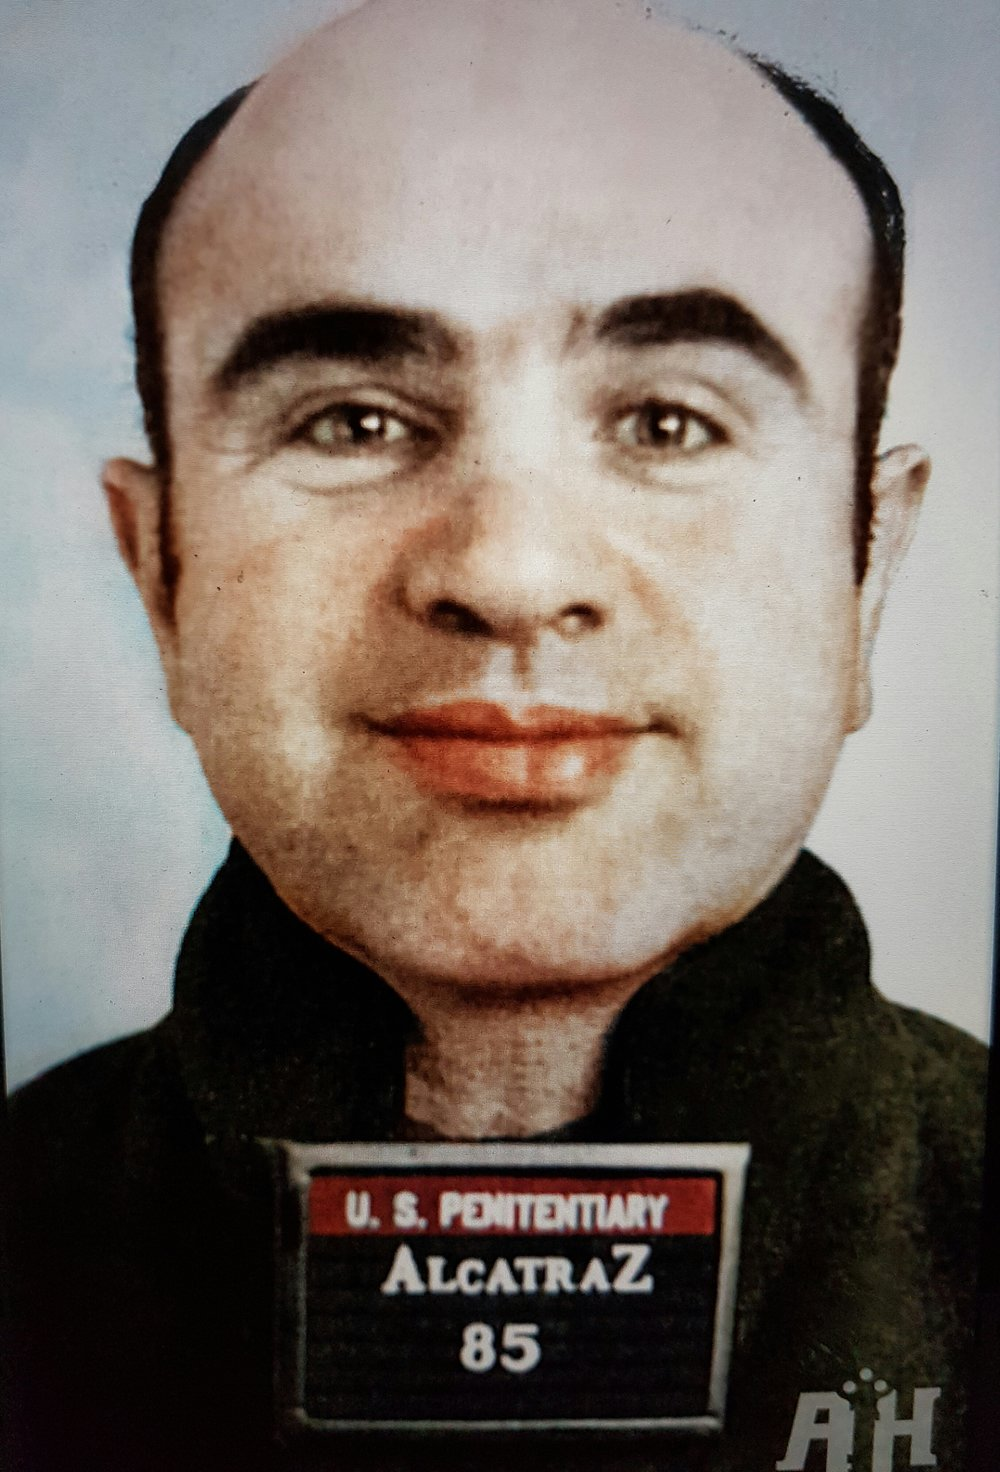 Photo of Al Capone at Alcatraz prison. Courtesy of  www.alcatrazhistory.com